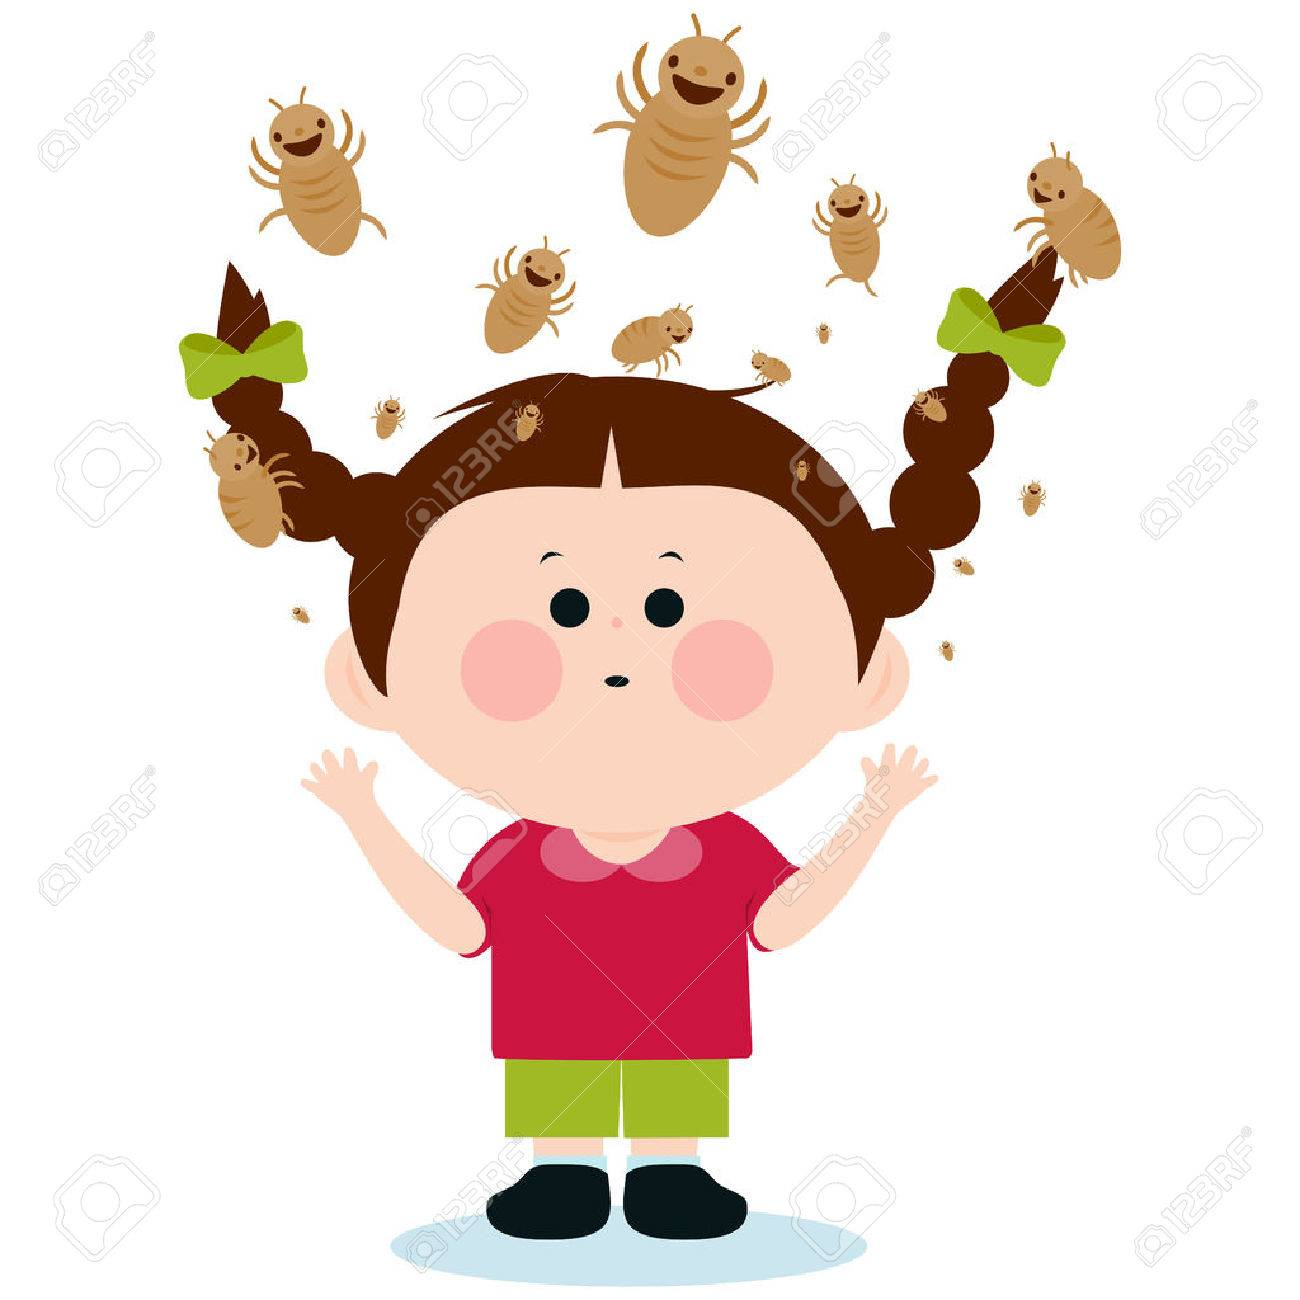 Girl with lice - 55450705